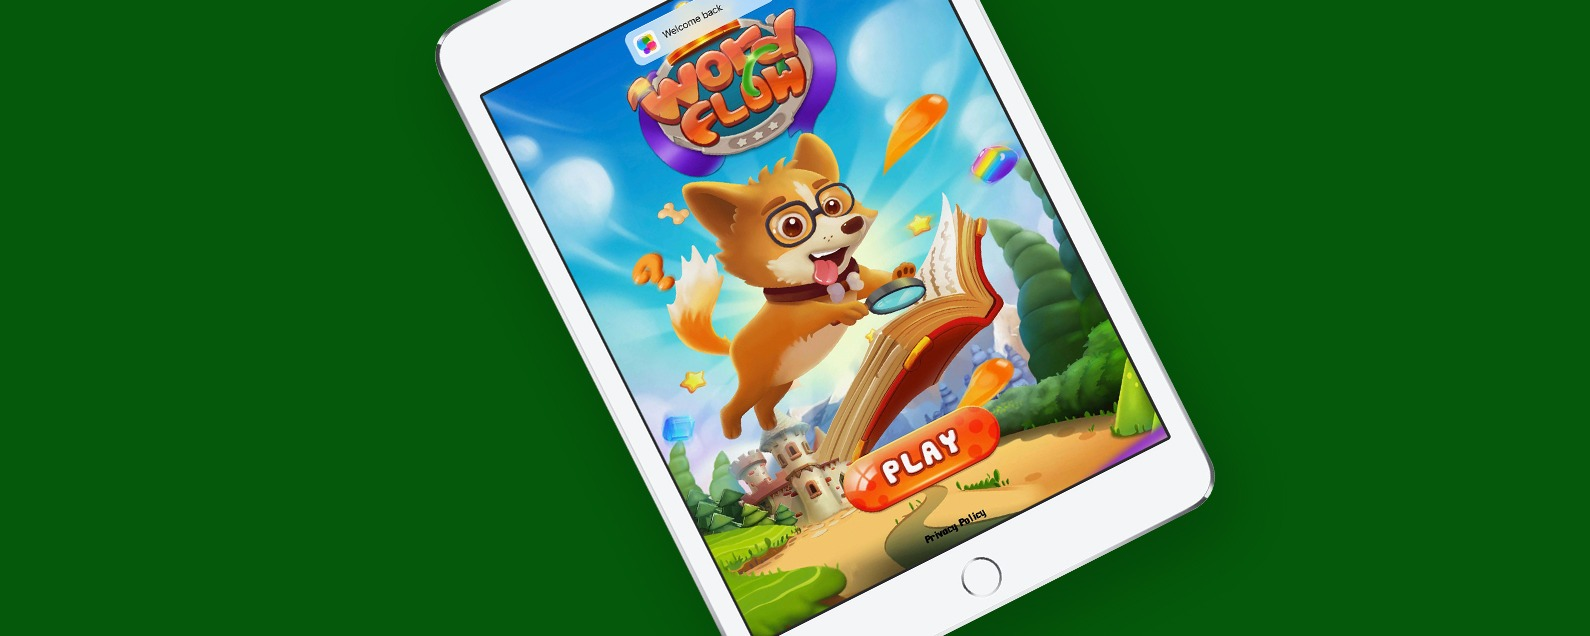 Free iPhone Games: Word Flow Is a Fun & Engaging Way to Pass